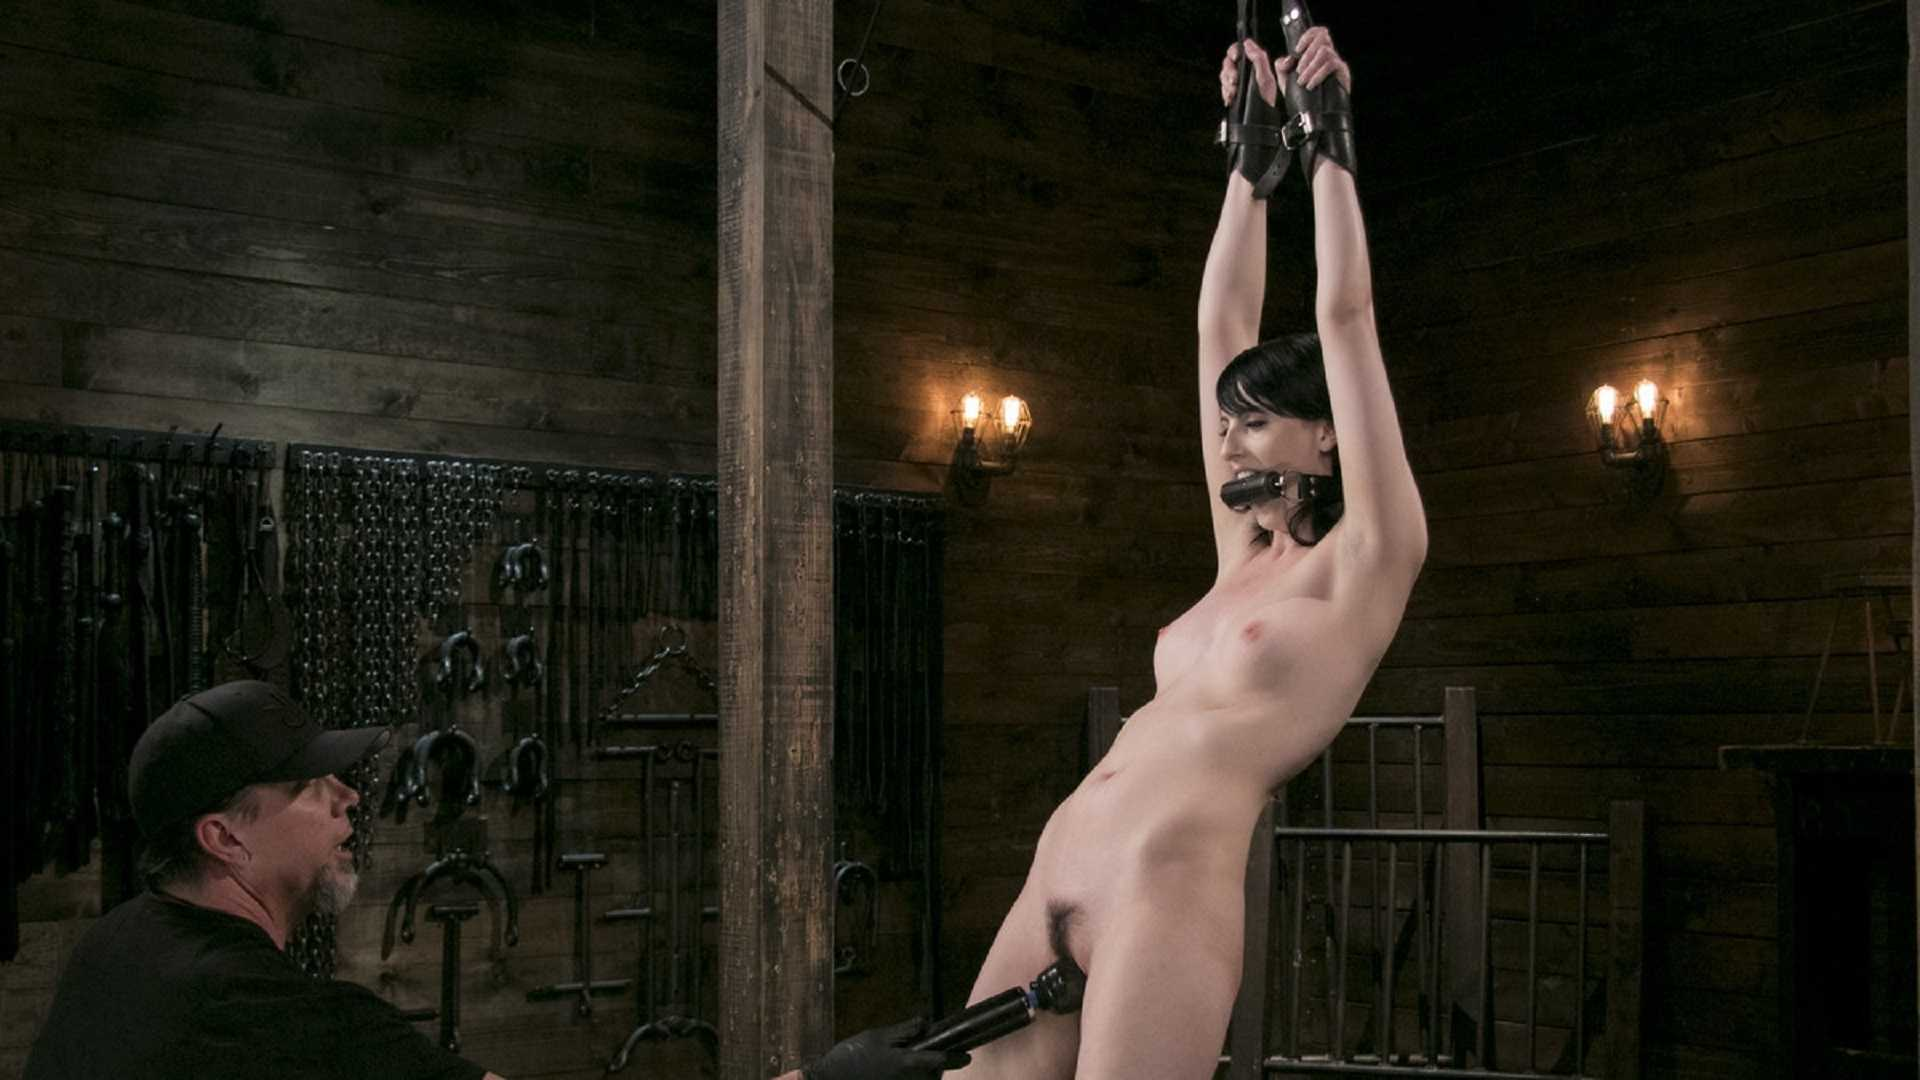 Fresh Meat – Alex Harper Gets Her 1st Taste of Domination and Bondage | HD 720p | Jul 13, 2017